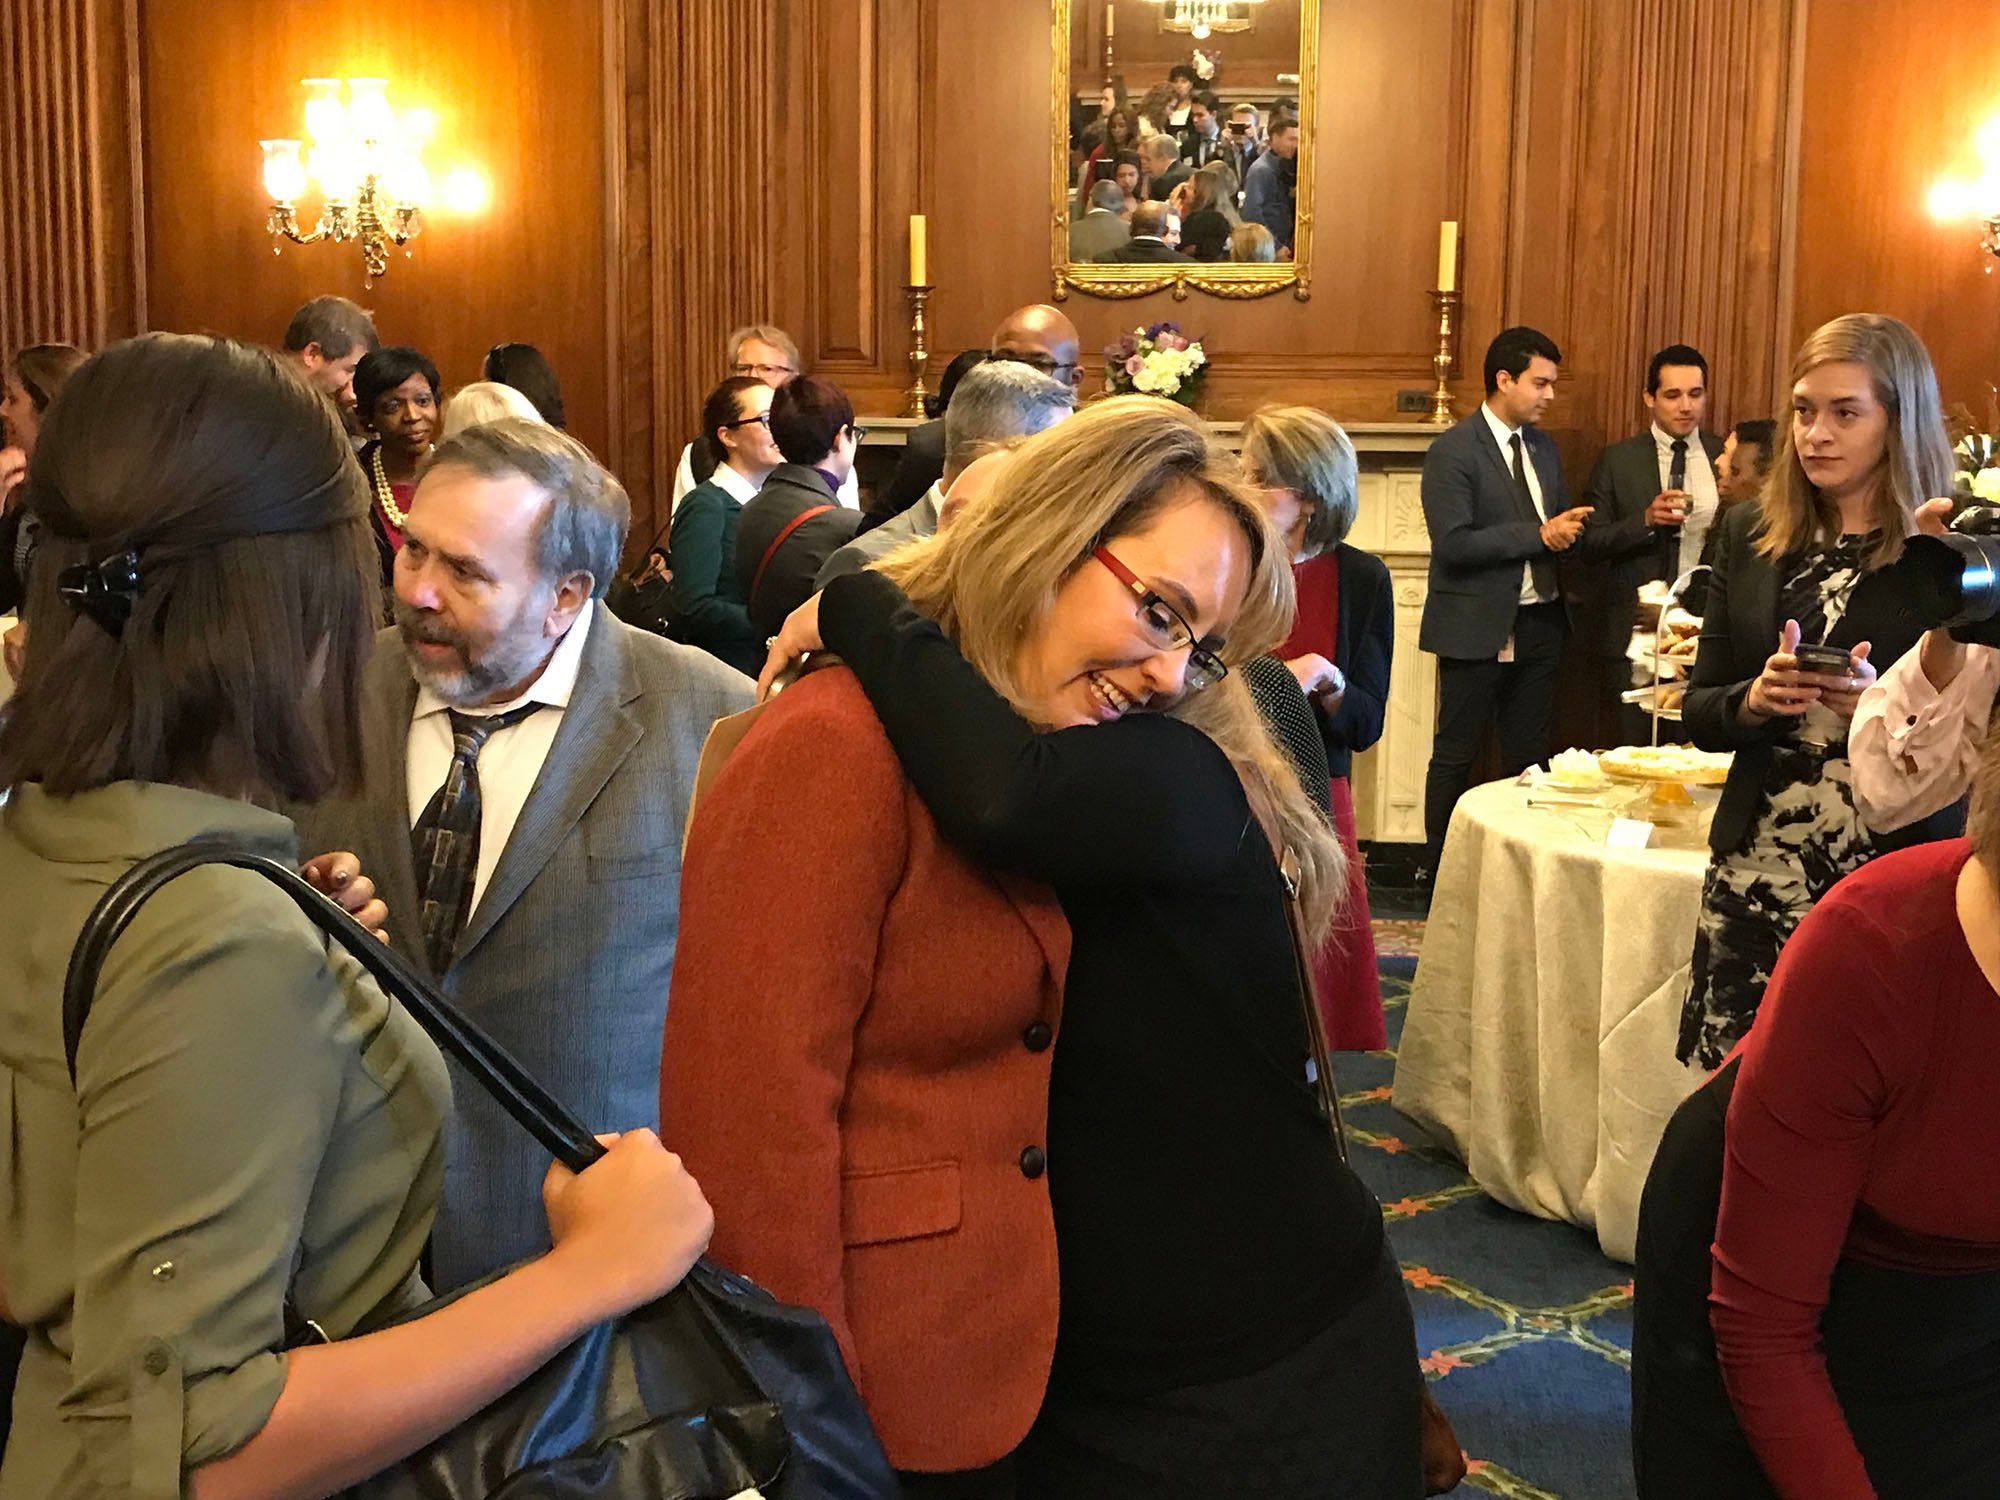 Former Arizona Rep. Gabrielle Giffords gets a hug from a well-wisher after an event to name a room at the U.S. Capitol in honor of her and the late California Rep. Leo J. Ryan Jr. (Photo by Trevor Fay/Cronkite News)